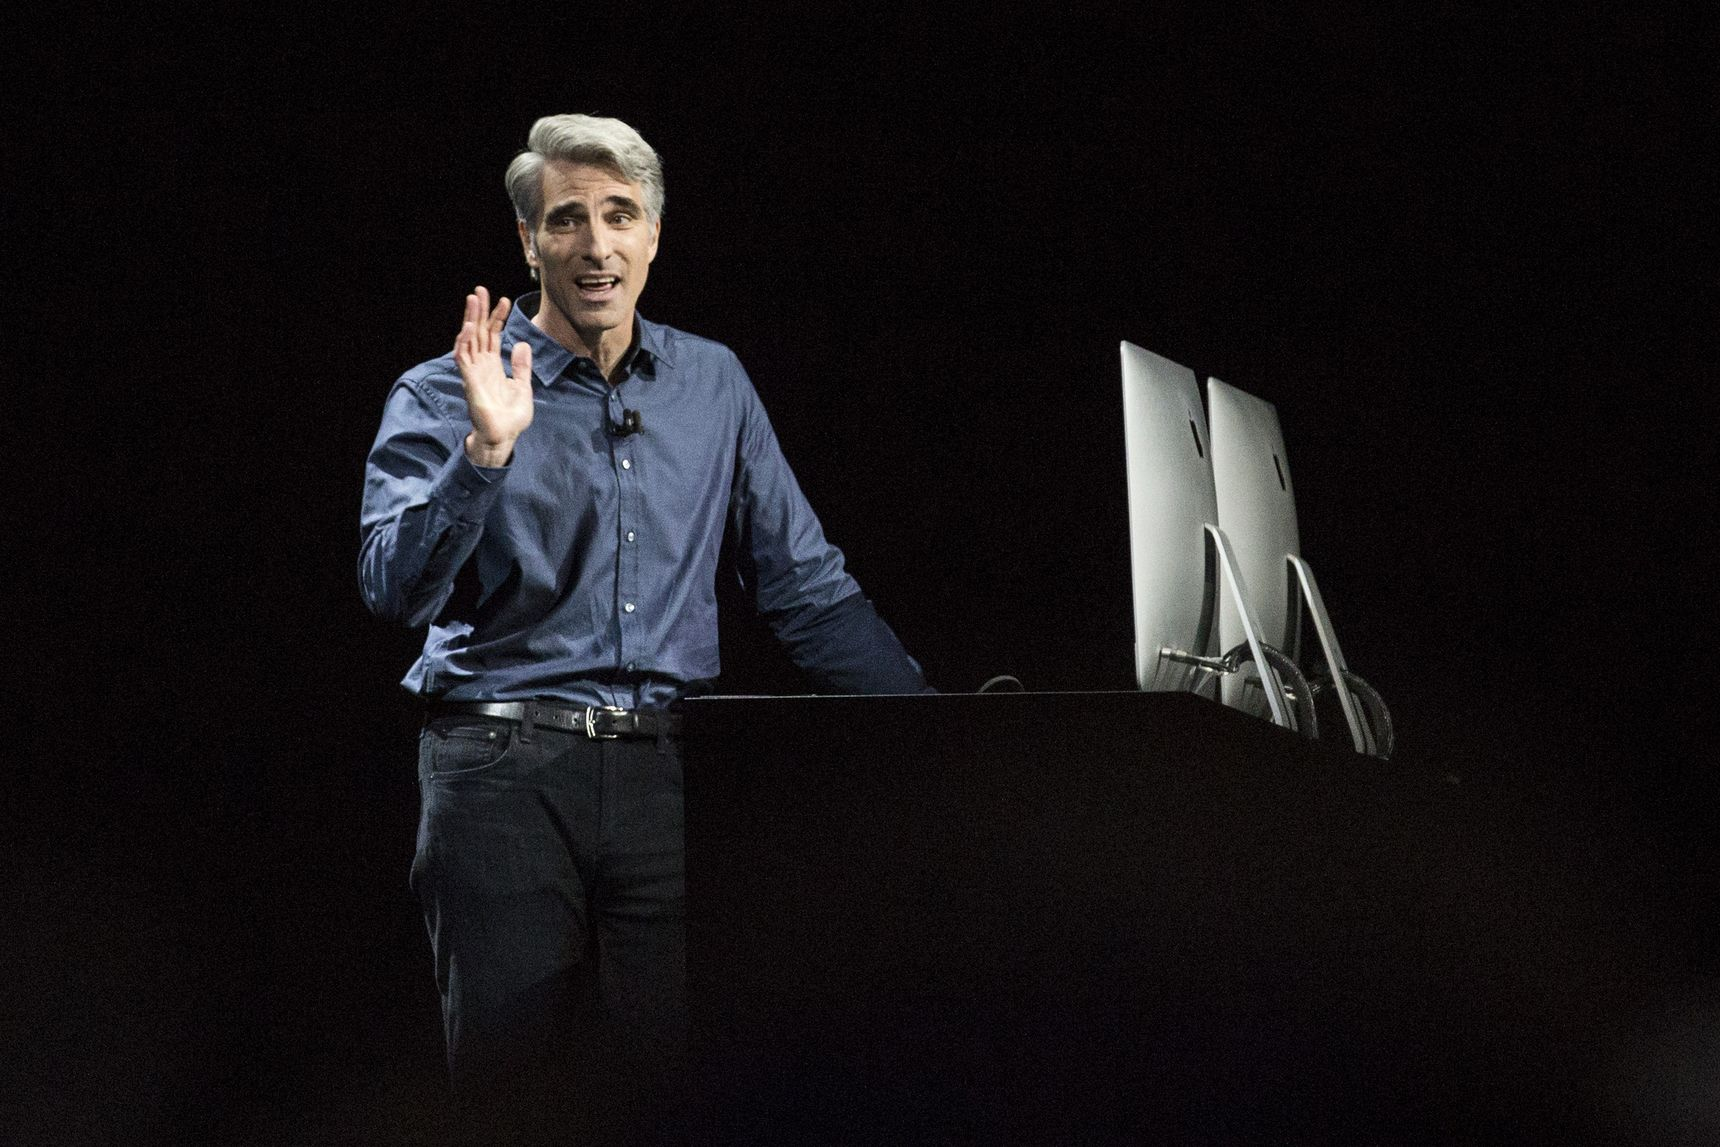 craig-federighi-apple-cook